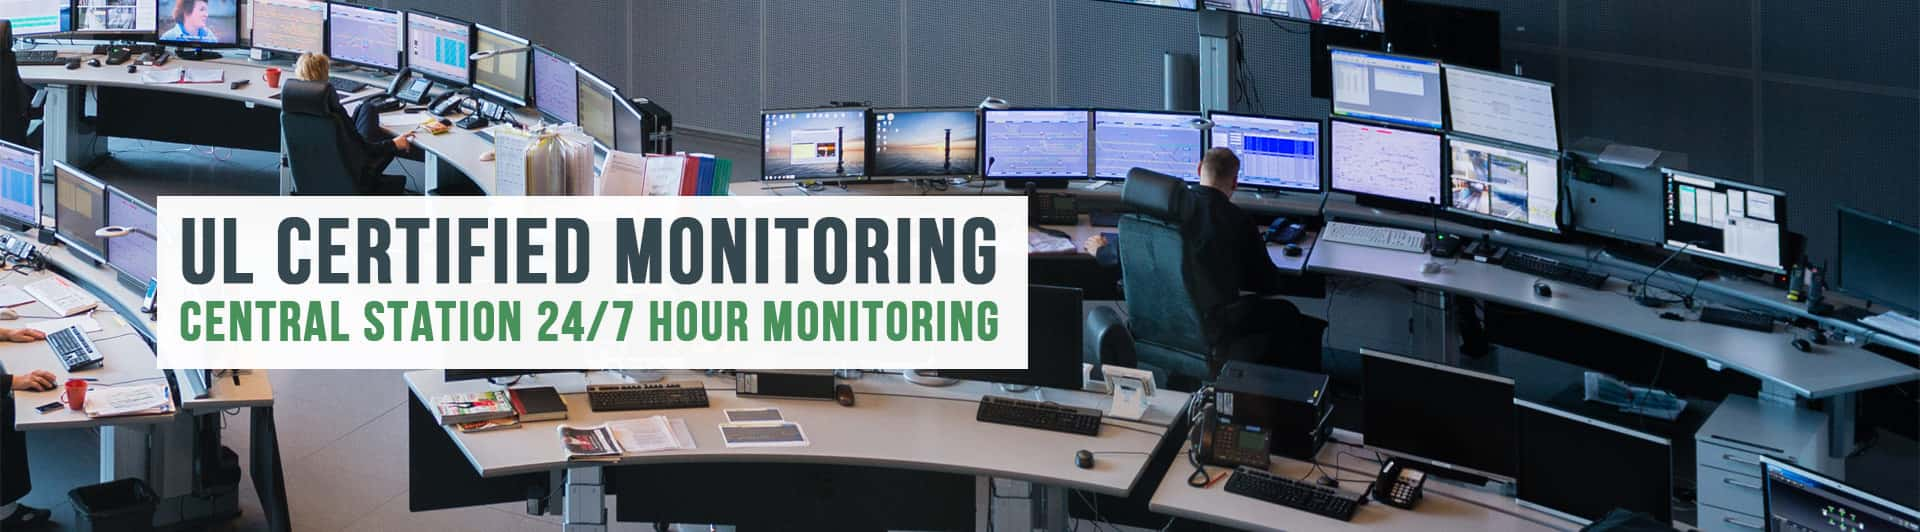 Ul Certified Monitoring